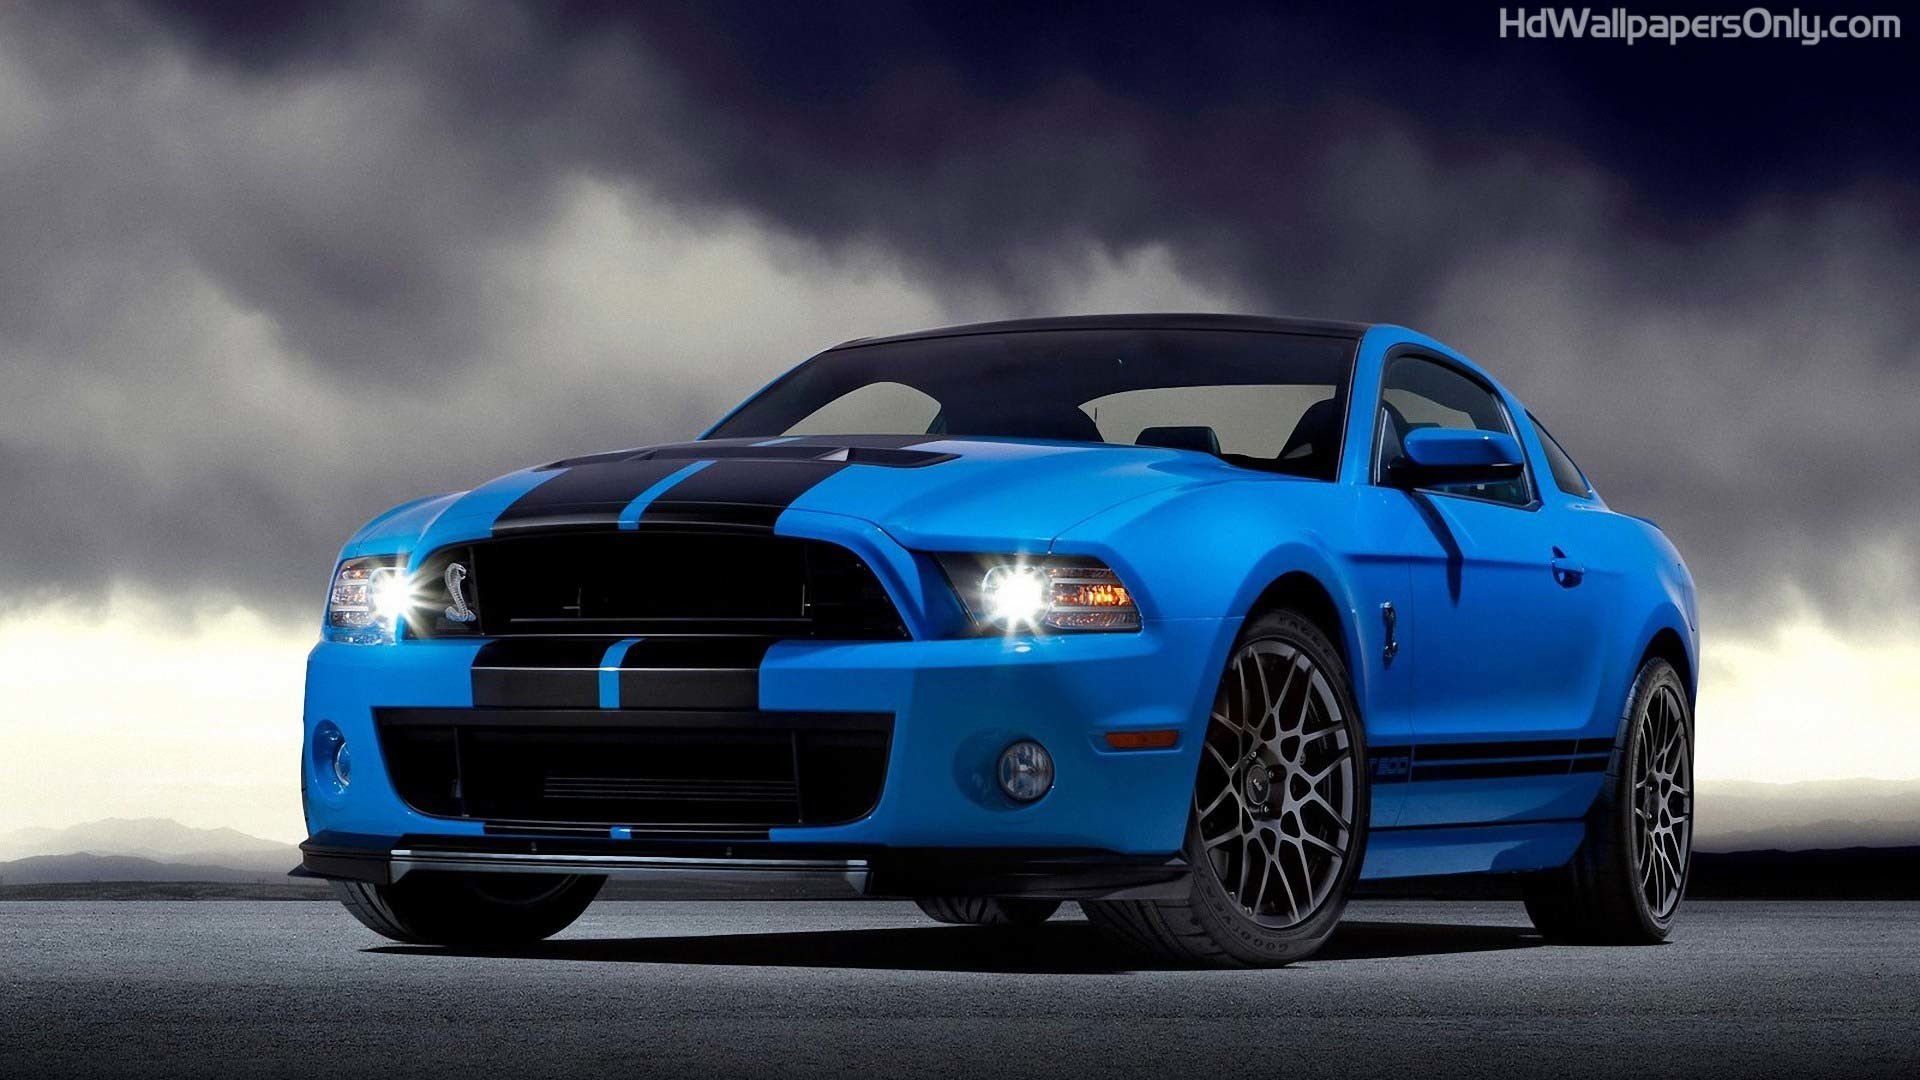 1920x1080 Car Wallpapers 63 Background Pictures